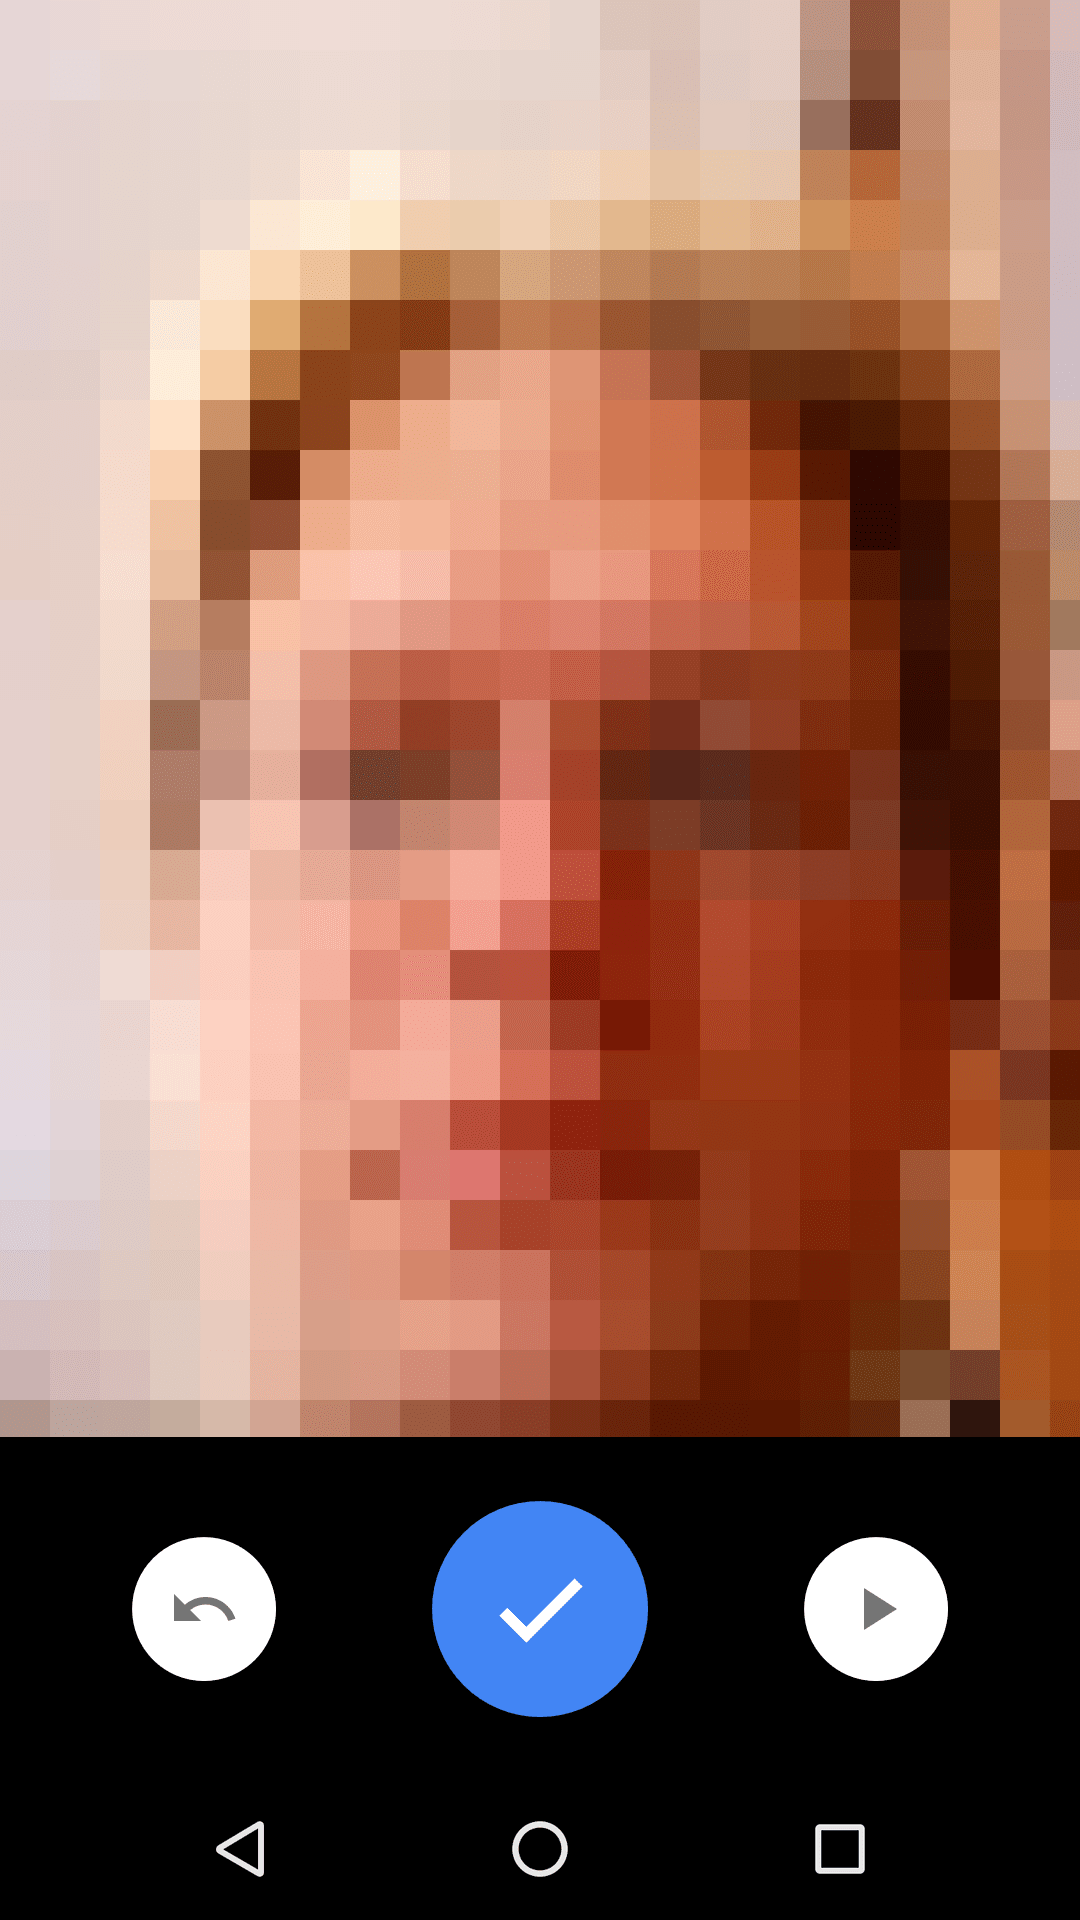 The Android camera app, in video mode. A person's face is in the camera viewer. Below the camera viewer is a large, blue checkmark button.